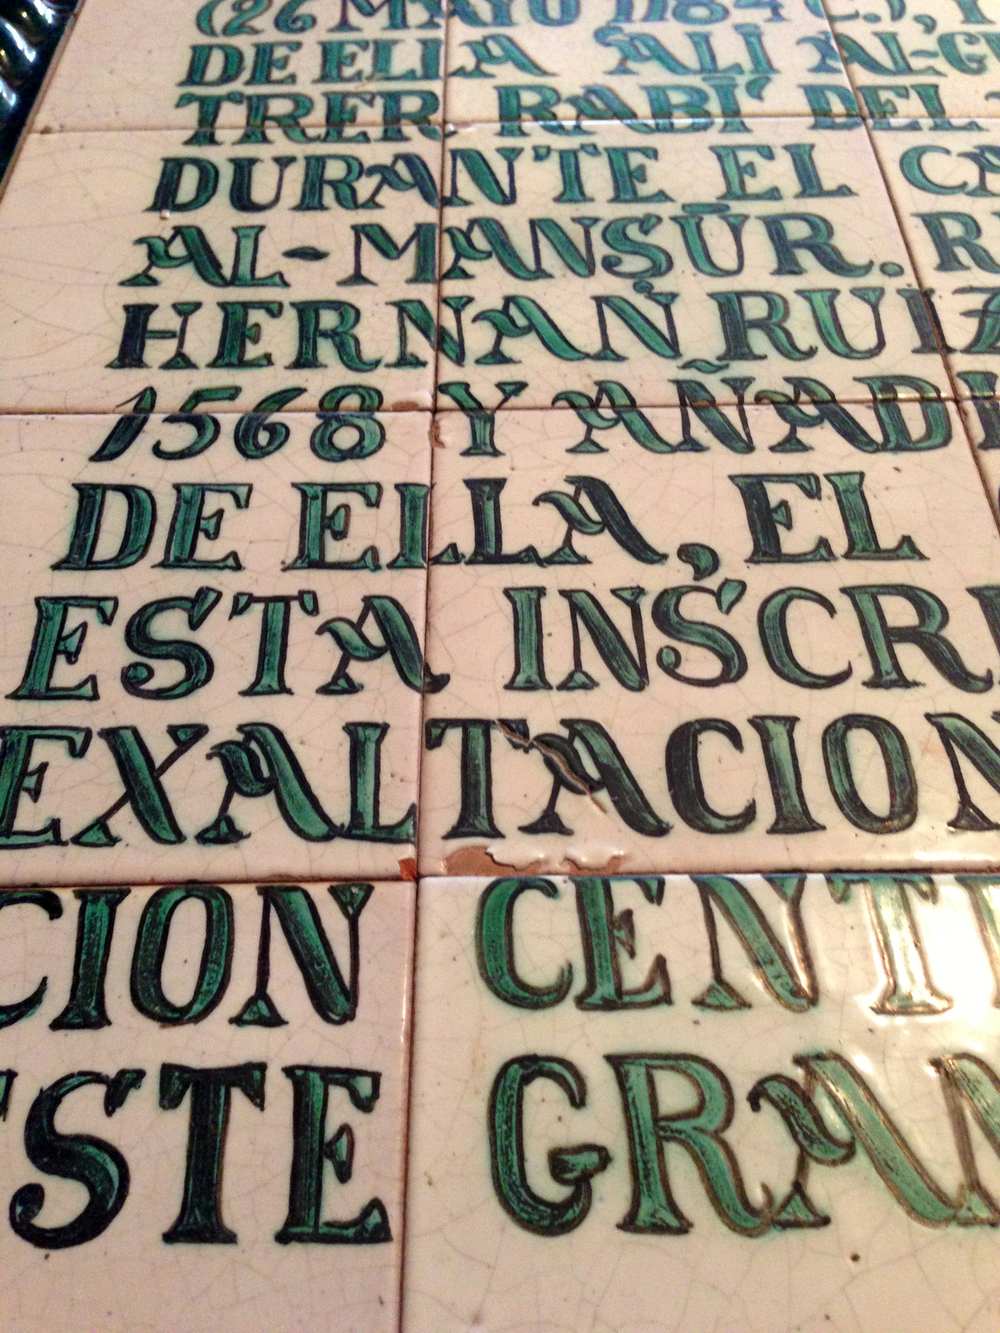 Very hand-painted lettering from the Catedral de Sevilla